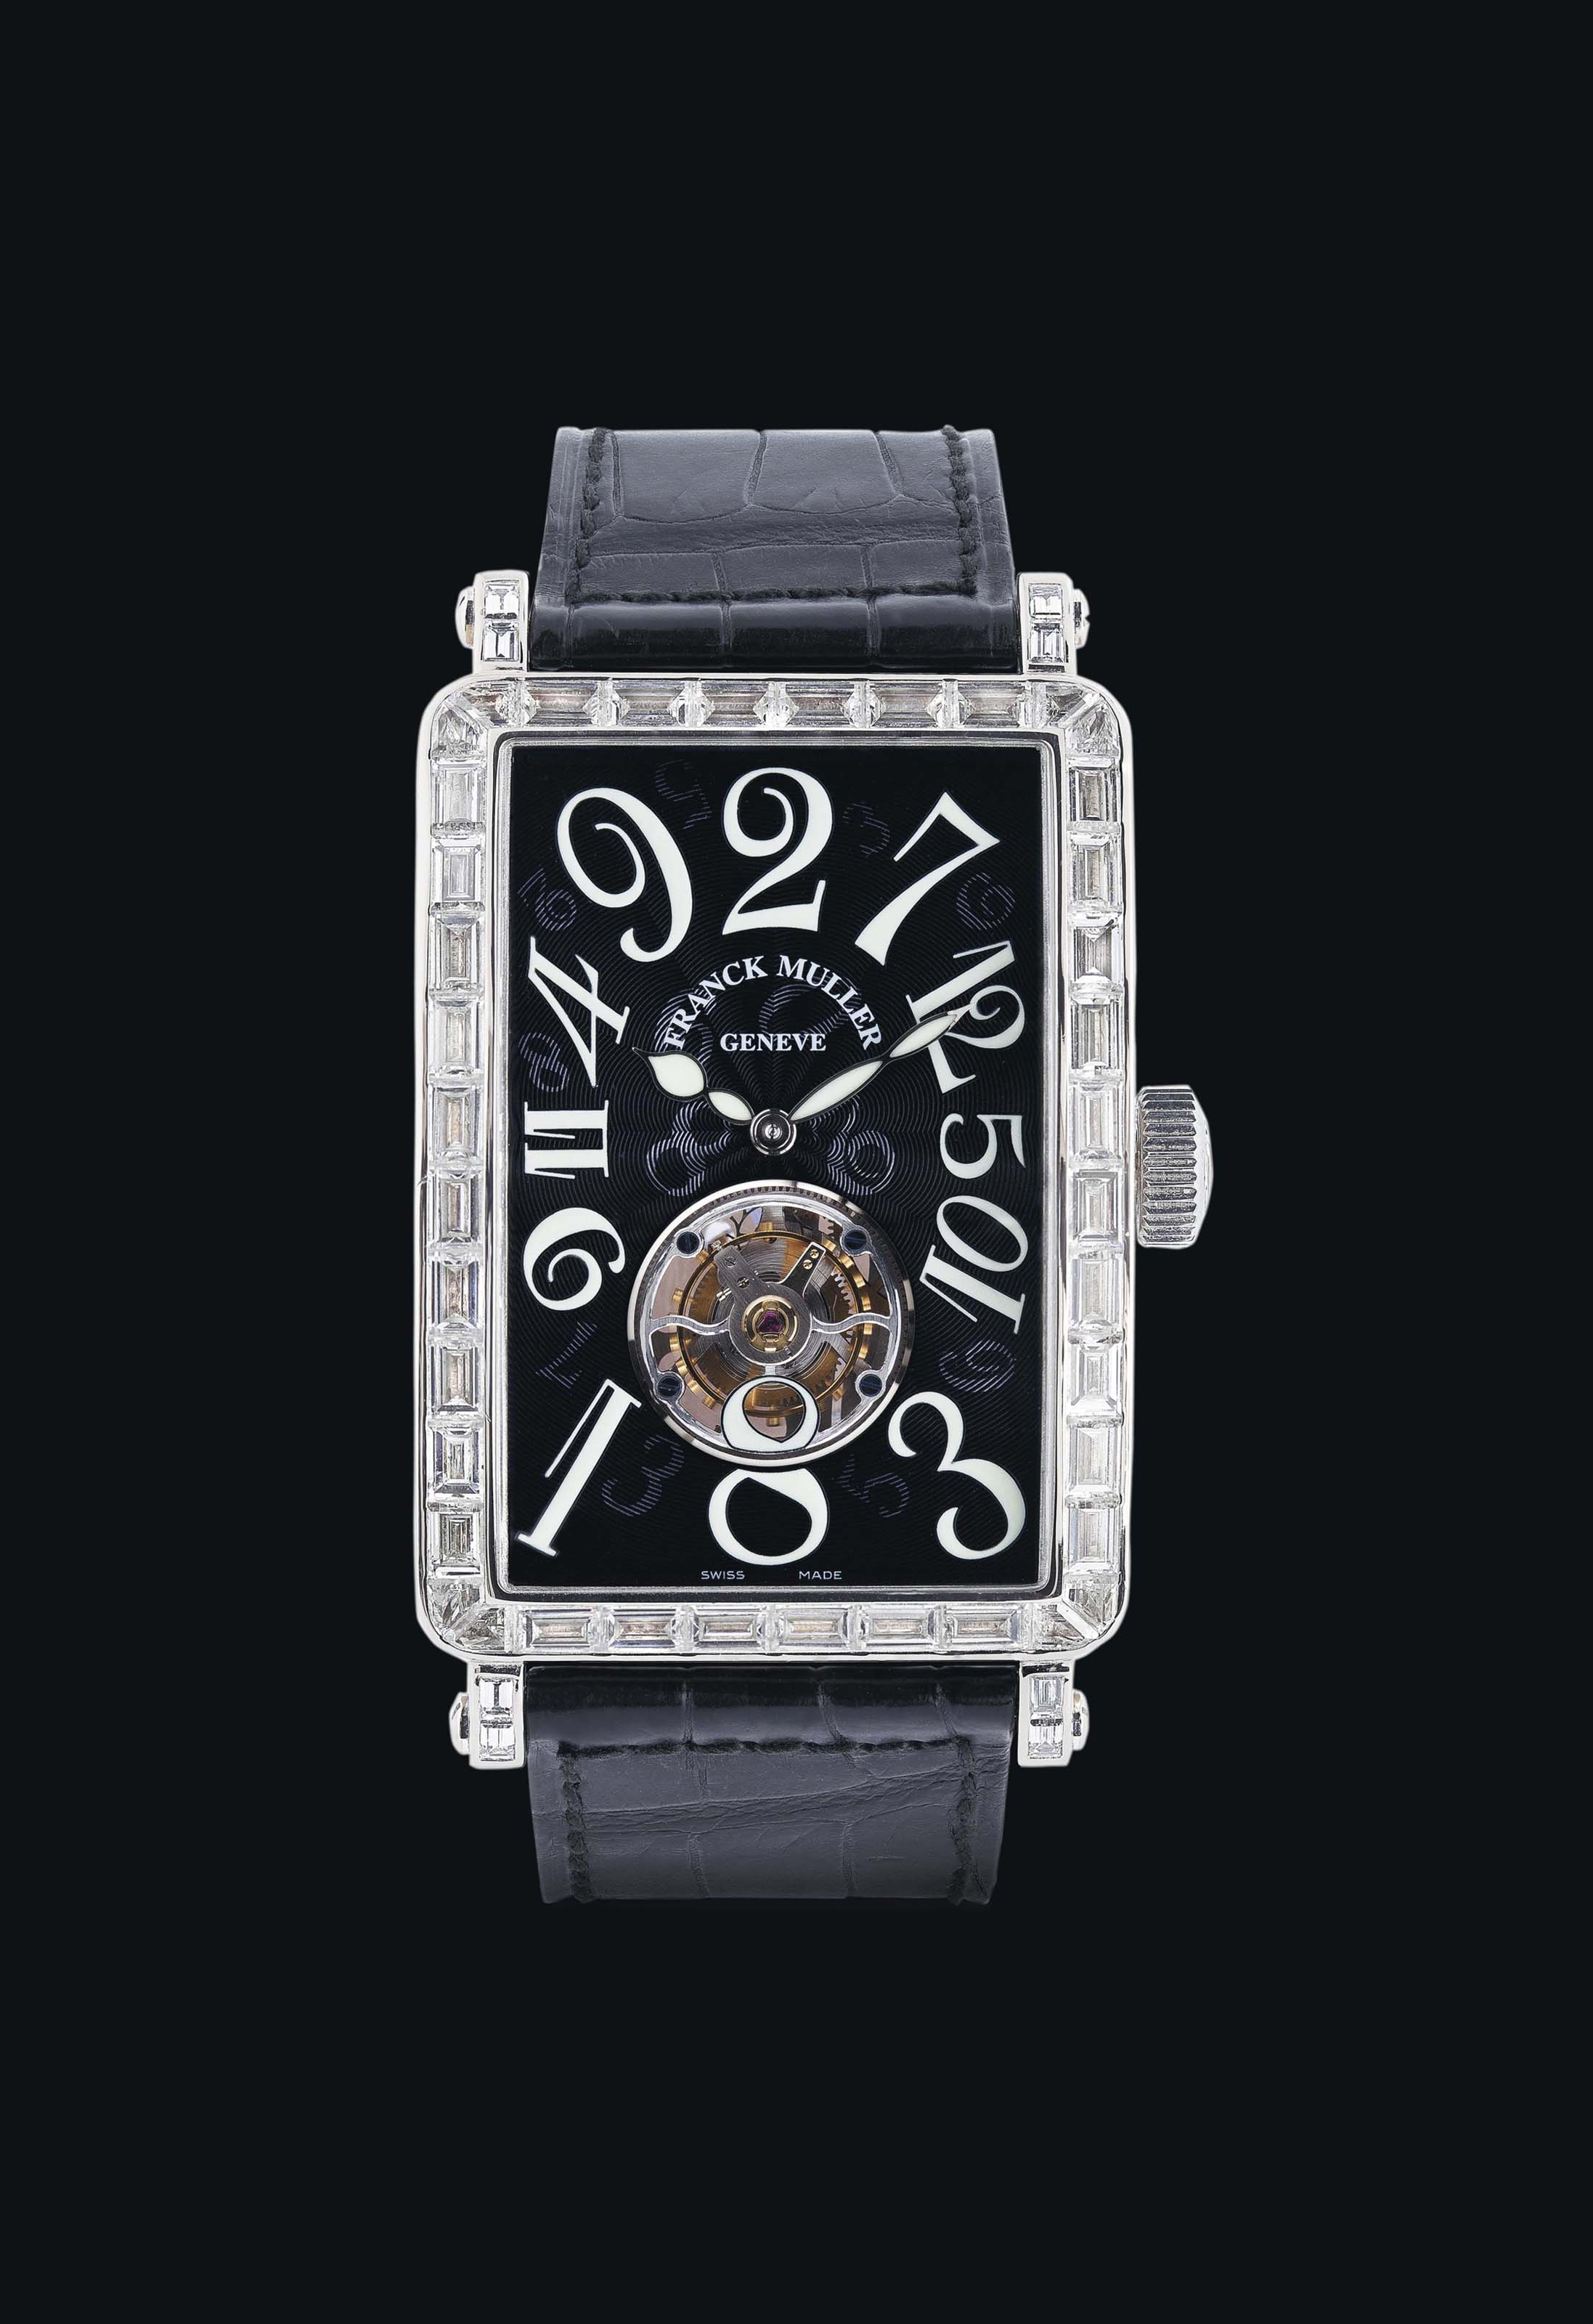 FRANCK MULLER. A VERY FINE AND RARE 18K WHITE GOLD AND DIAMOND-SET RECTANGULAR TOURBILLON JUMPING HOUR WRISTWATCH SIGNED FRANCK MULLER, LONG ISLAND CRAZY HOUR TOURBILLON MODEL, REF.1300 T CH BAG, MOVEMENT NO. FM2001-2HF, CASE NO.03, CIRCA 2005